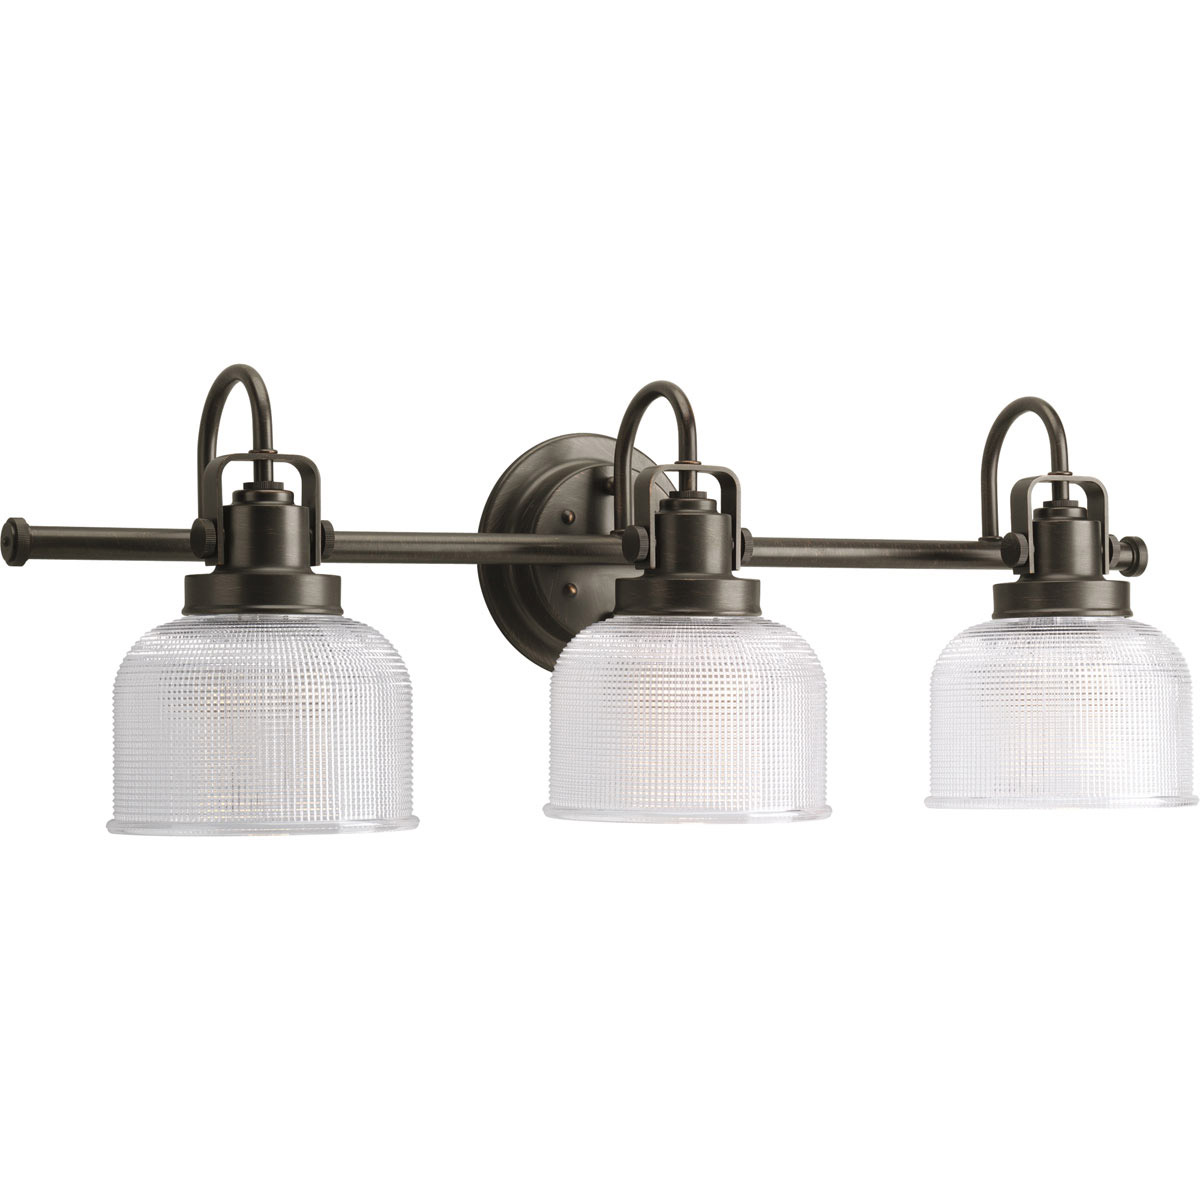 Lantern Bathroom Vanity Lights : Progress Lighting P2992-74 Archie Vanity Light